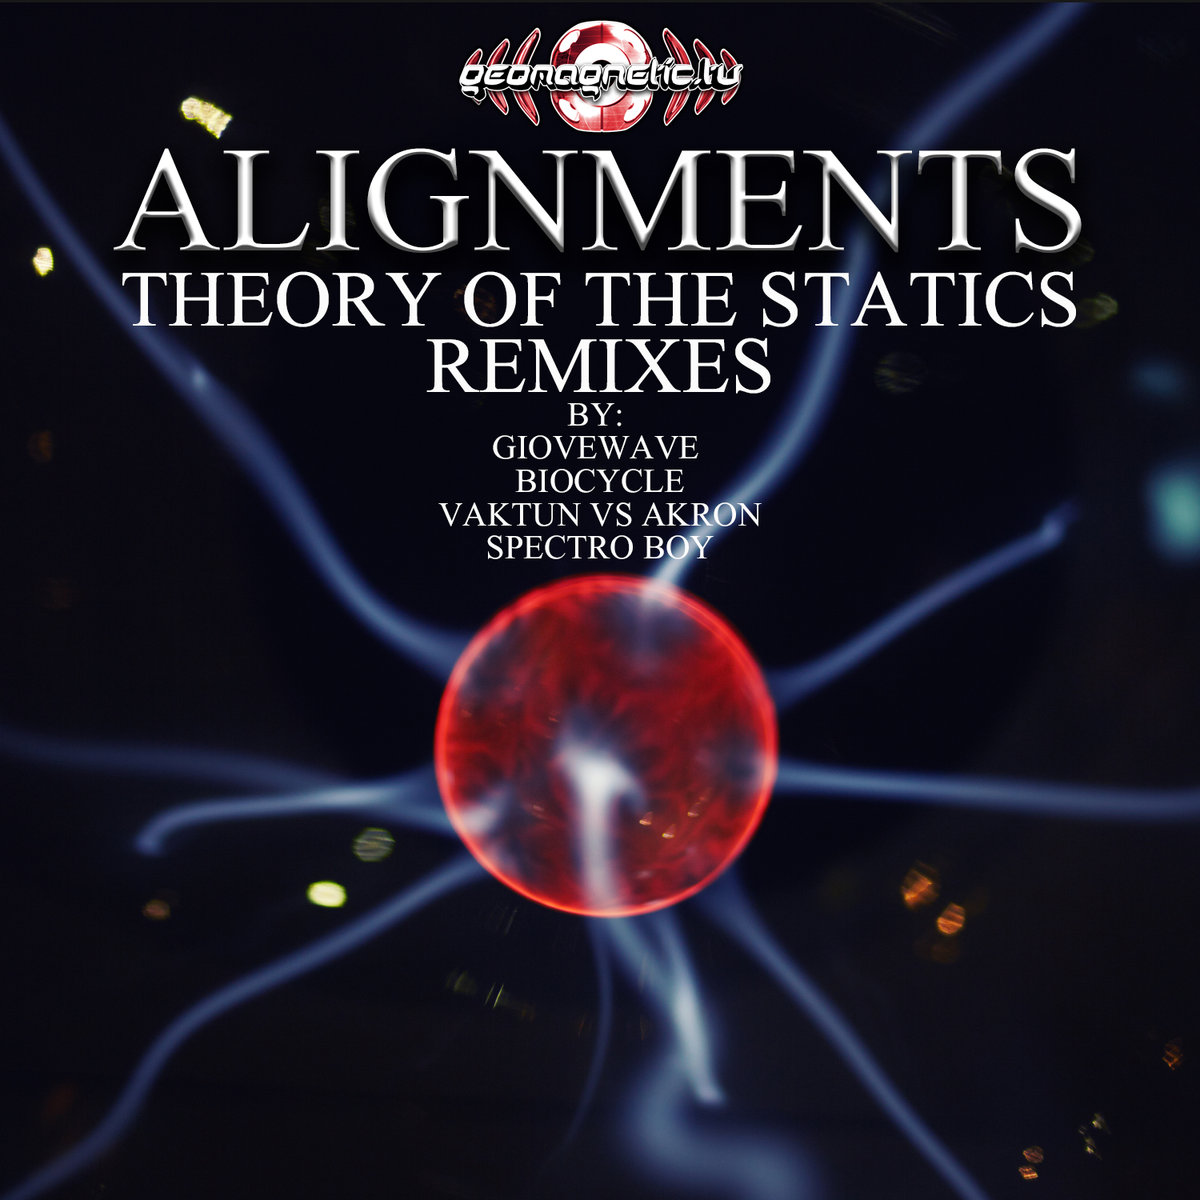 Alignments - Theory of the Statics (Remixes) @ 'Theory of the Statics (Remixes)' album (electronic, goa)